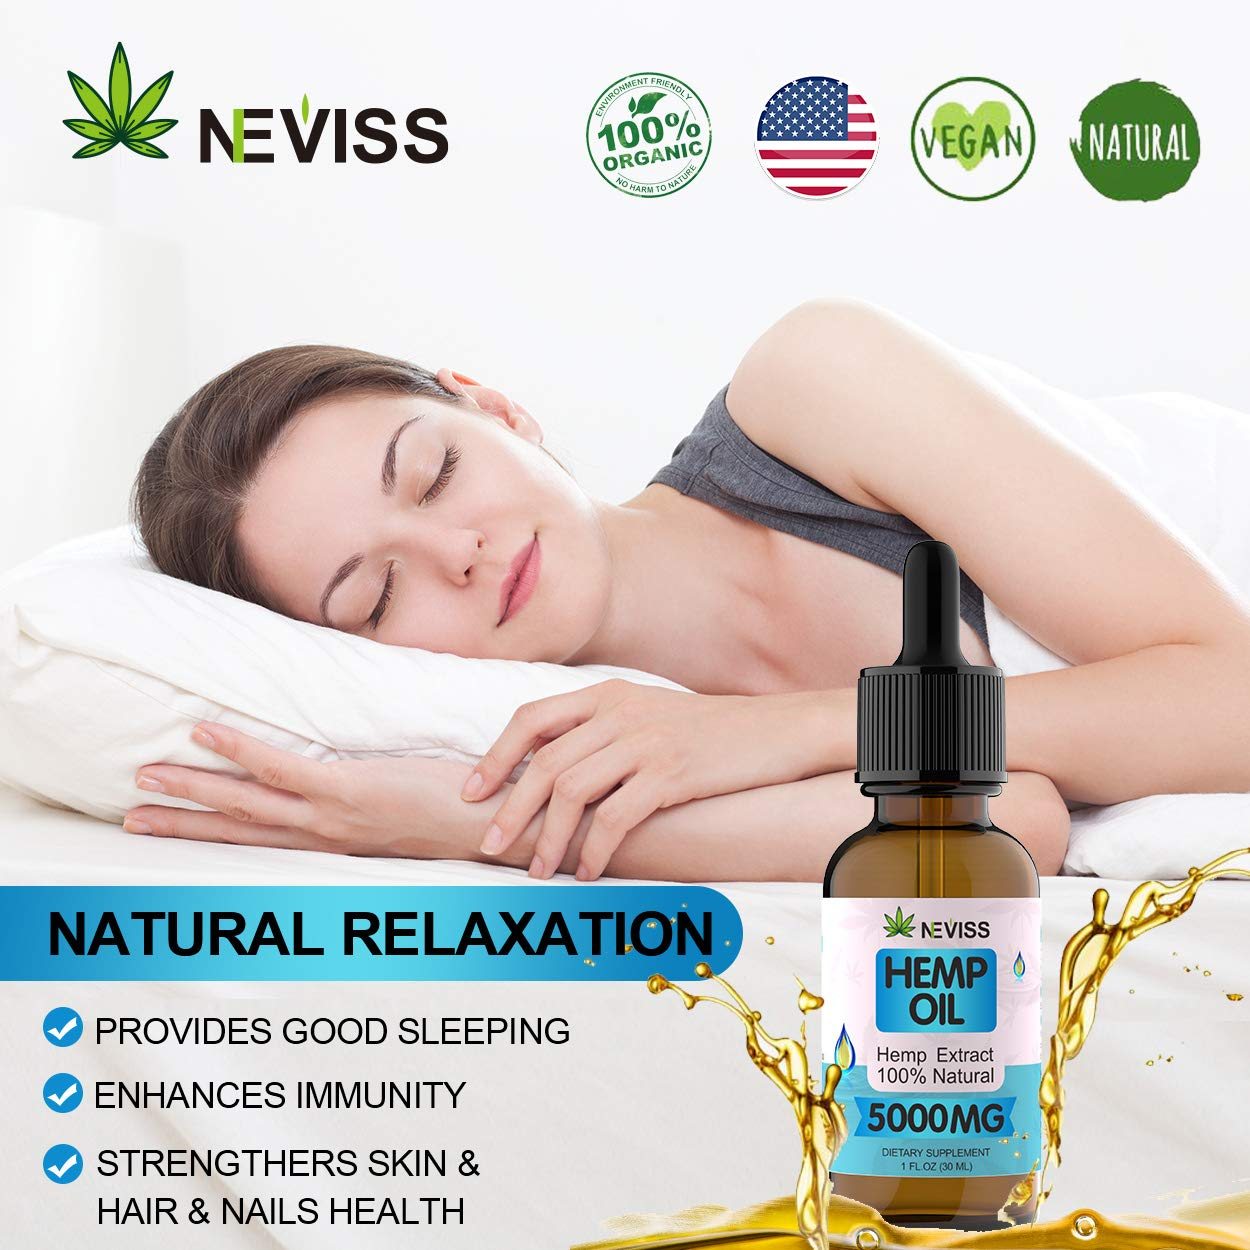 (2 Pack) Organic Hemp Oil Tincture 5000mg for Pain Relief, Stress and Anxiety Relief, Improve Sleep - 100% Natural Hemp Extract, Vegan Hemp Oil Extract- Made in USA